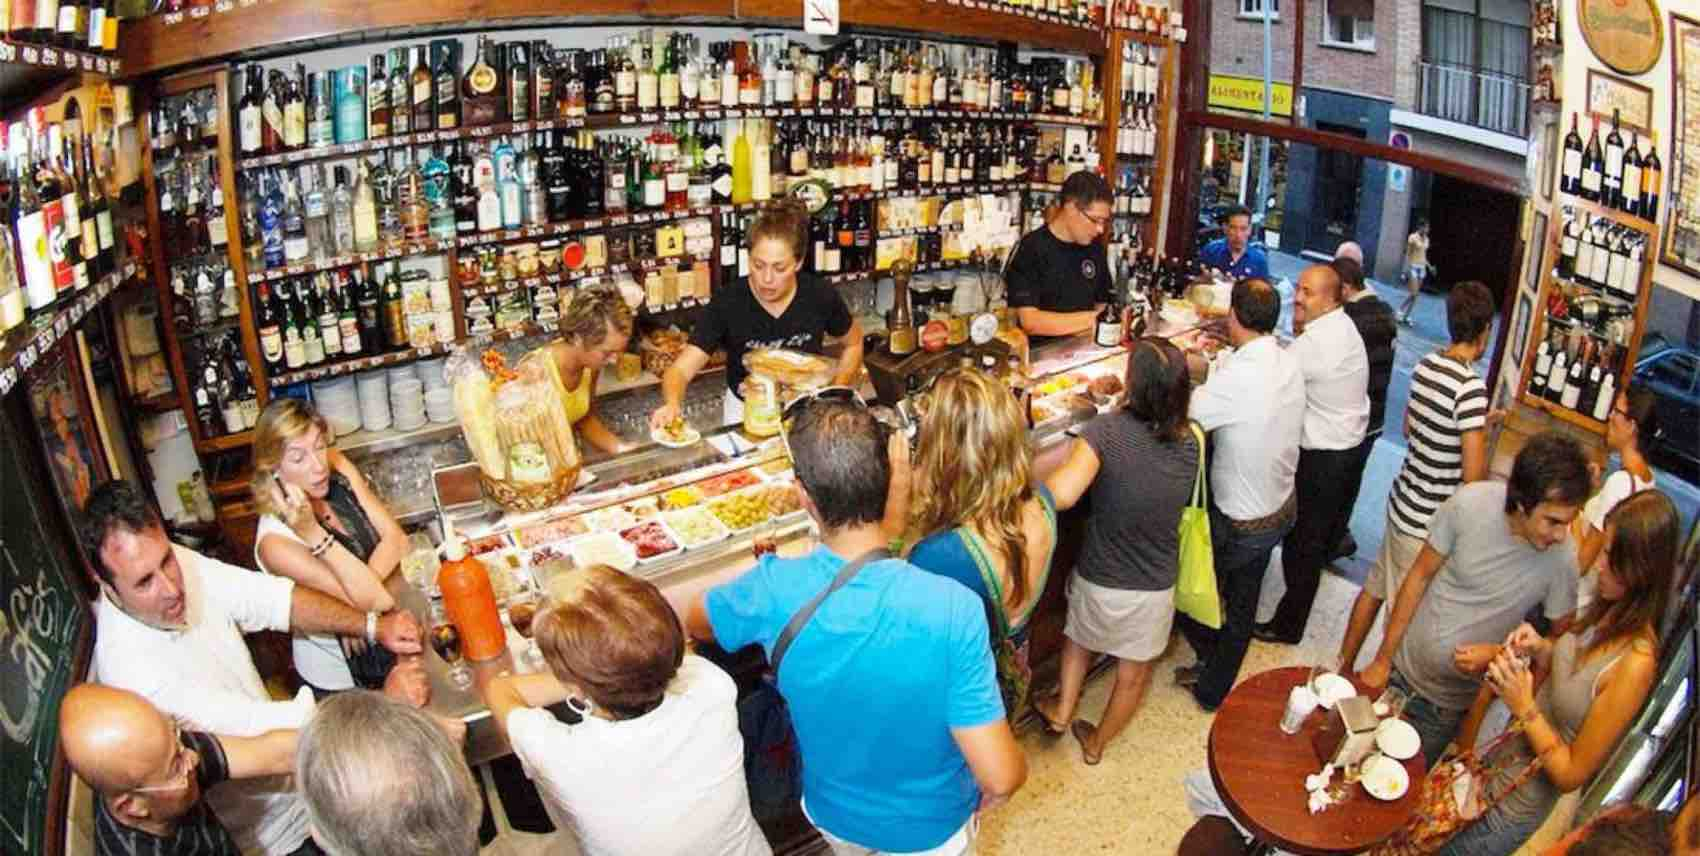 Tapas in Barcelona - and tapas served all over Spain